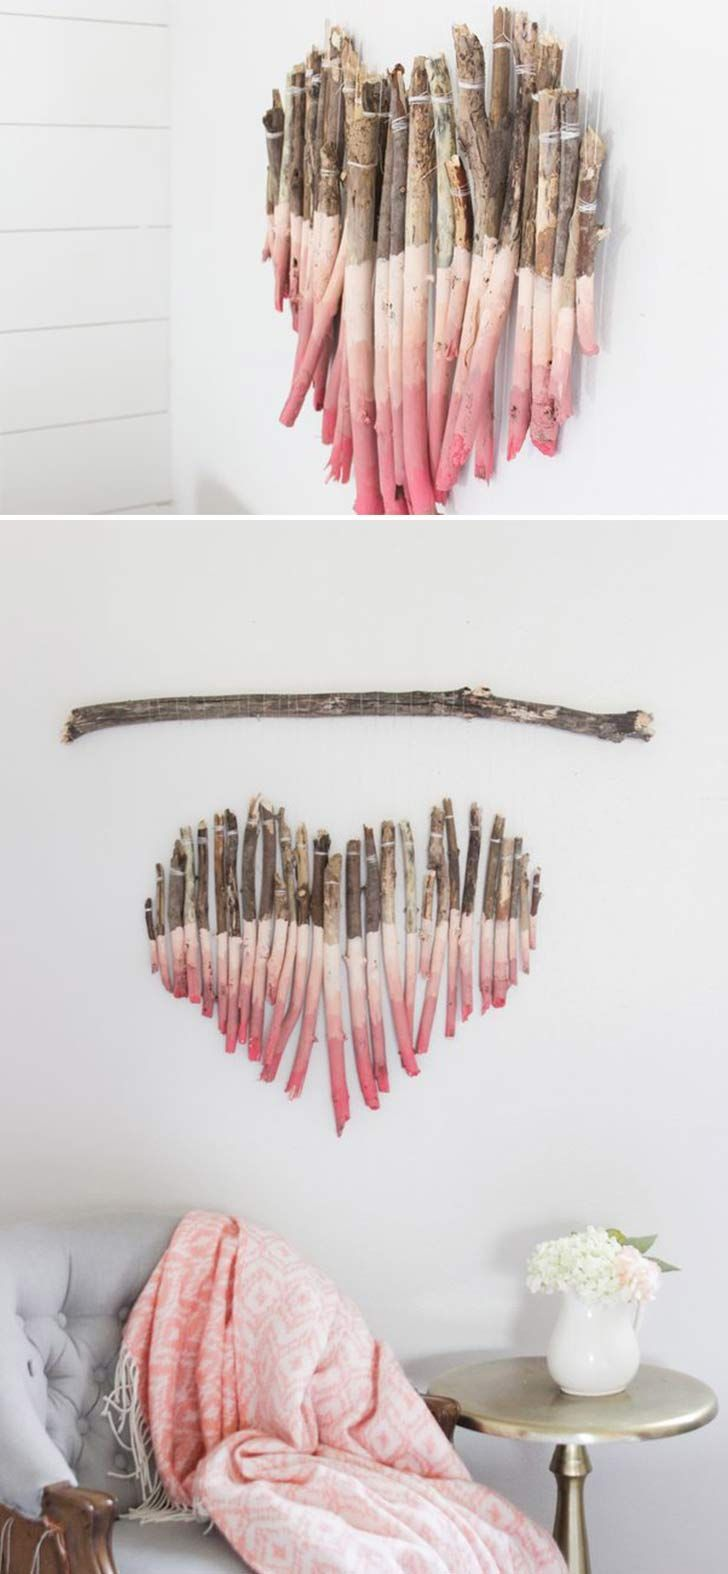 50 Home Decor DIY Crafts and Ideas You Can Easily Complete | Art ...